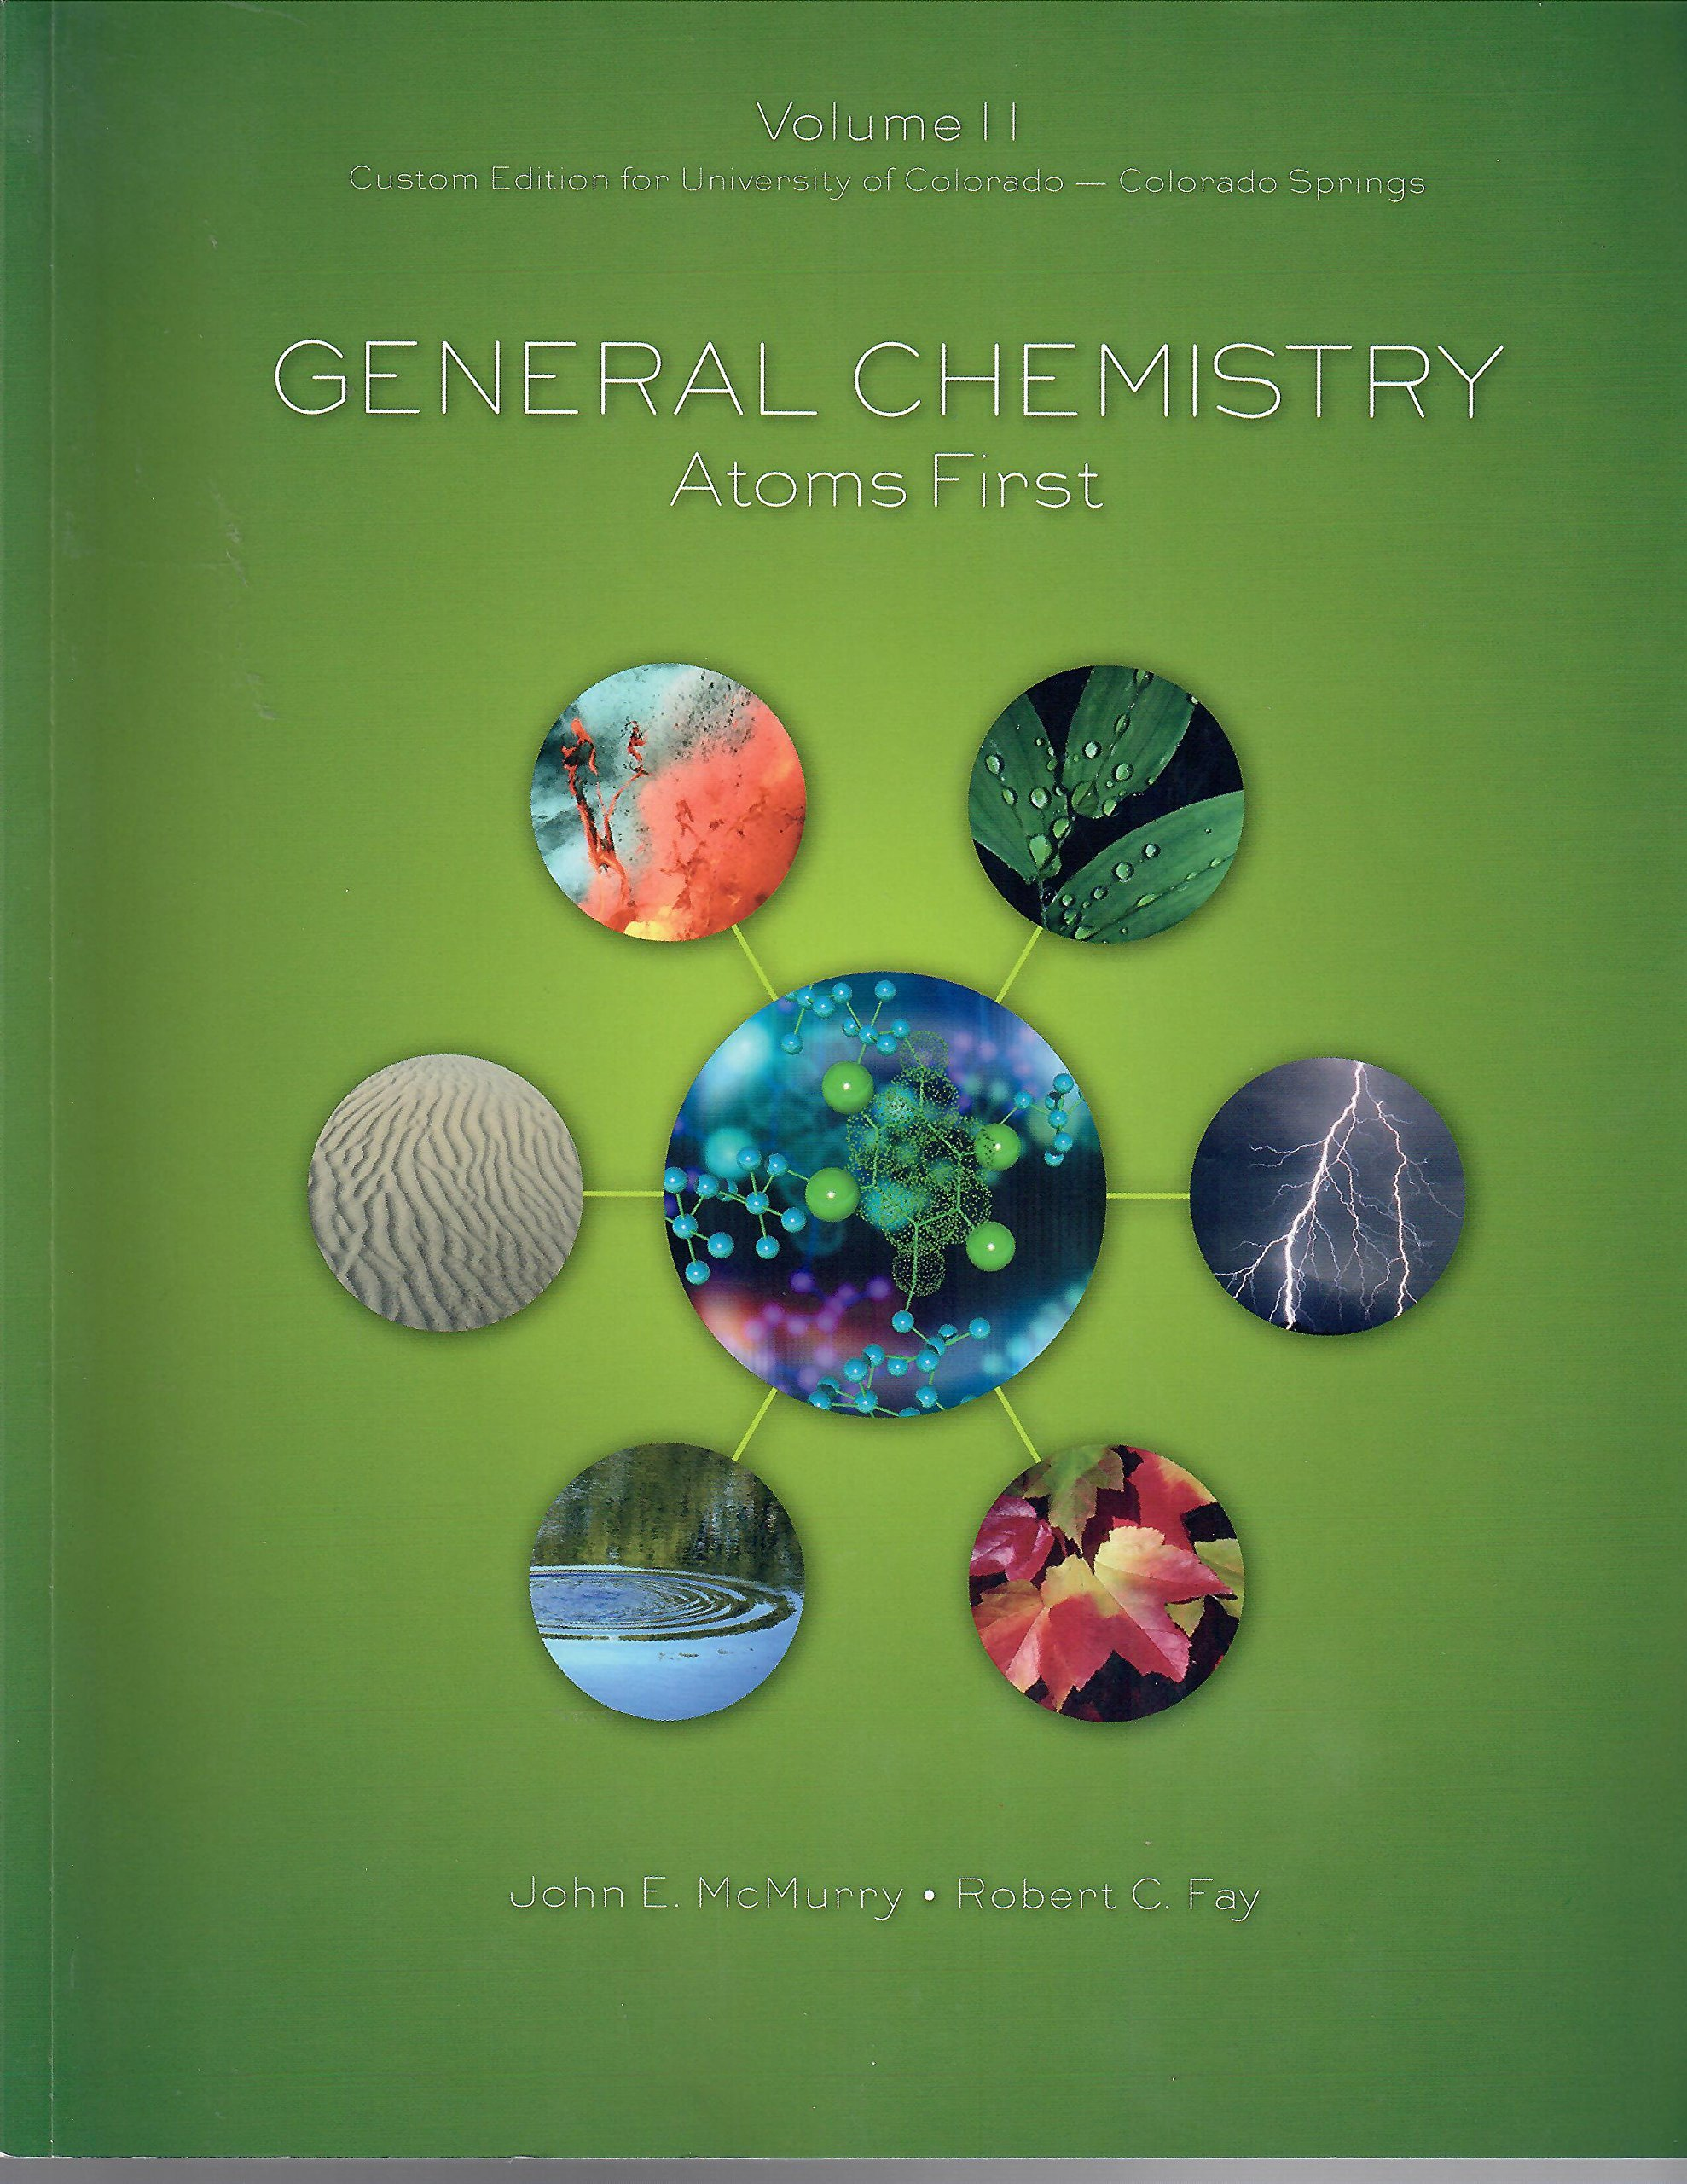 General Chemistry Atoms First Vol. 1: Custom Edition for University of  Colorado - Colorado Springs: Robert C. Fay, John E. McMurry: 9781269632614:  ...